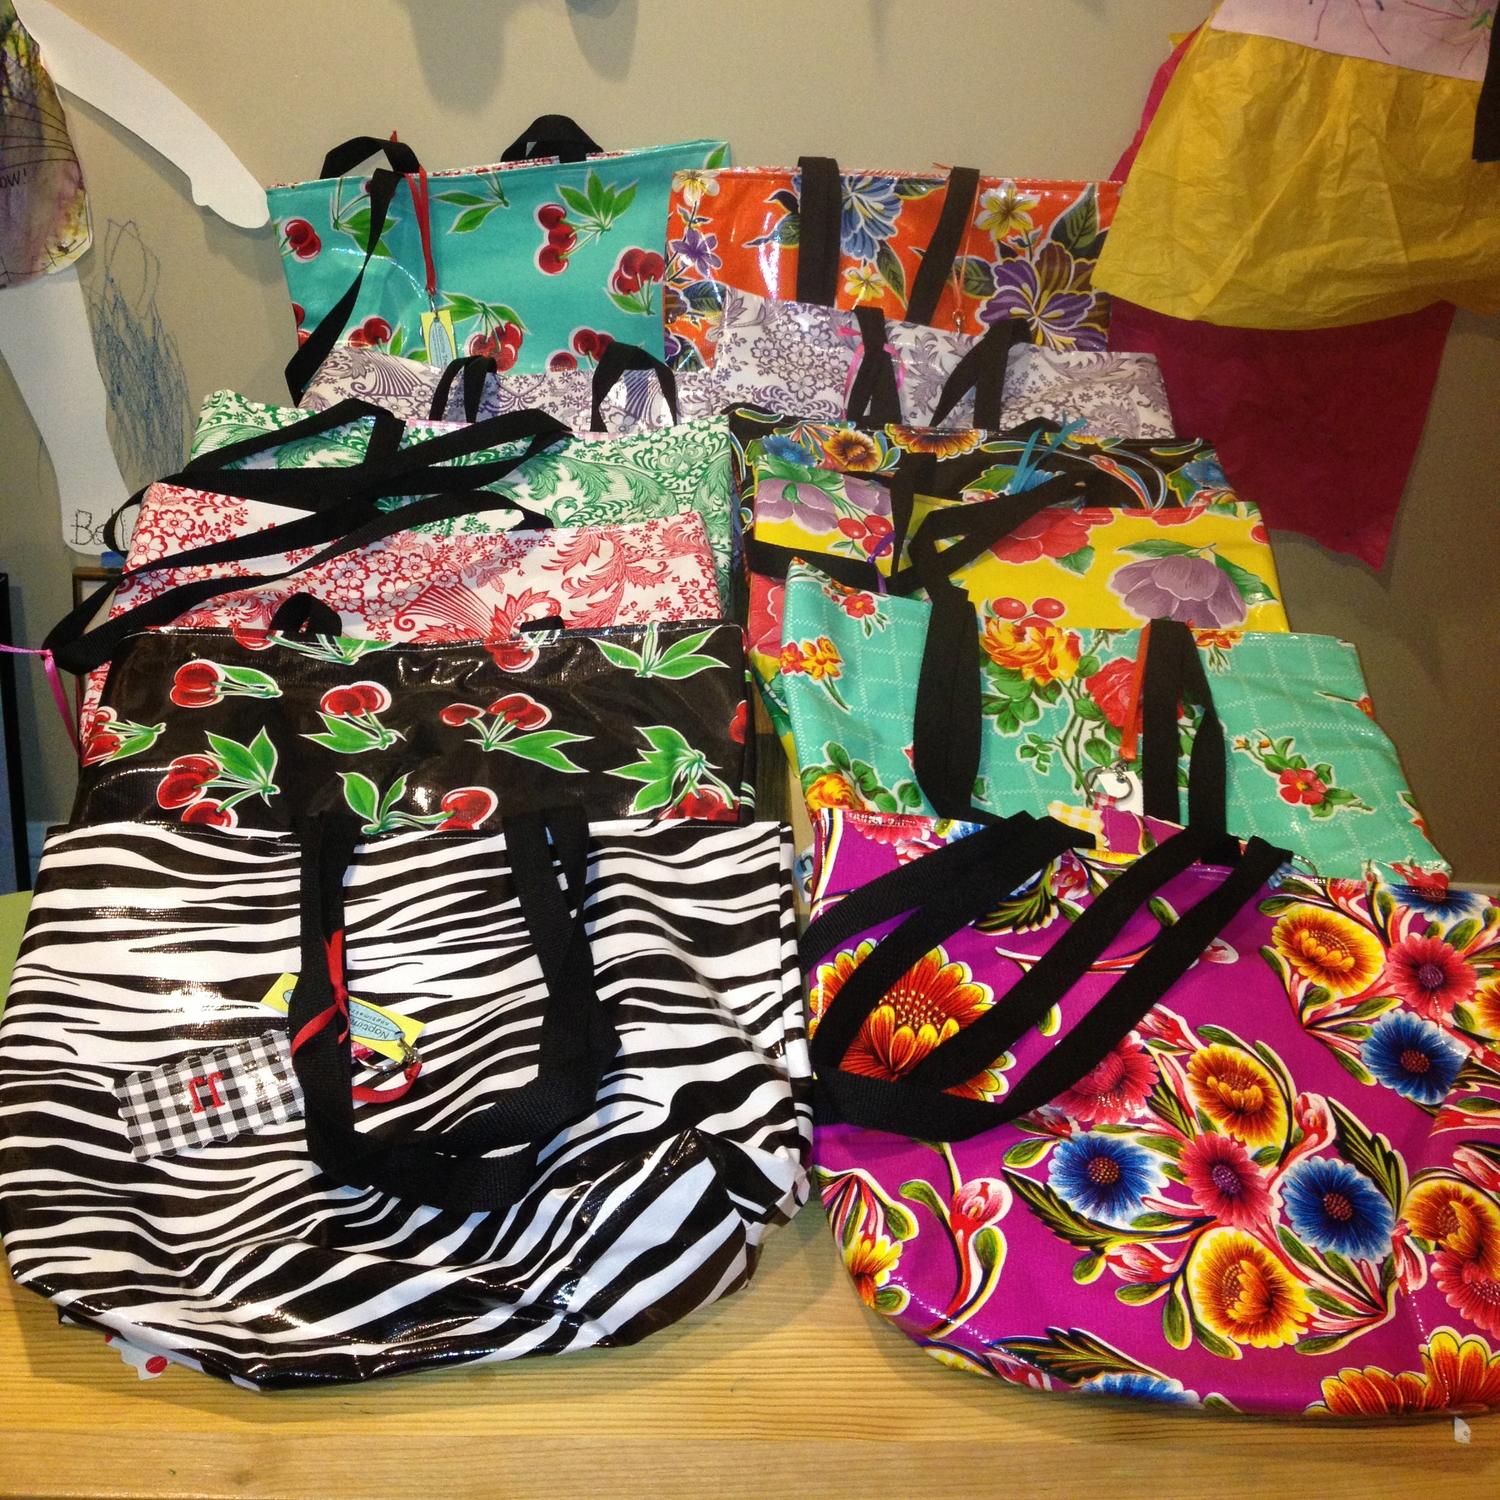 Look at these oilcloth bags I gave at the end of the year to the teachers in 2013 - back when my friend, Katie Sansted, called her company Naptime Treasures - now it's KT design.